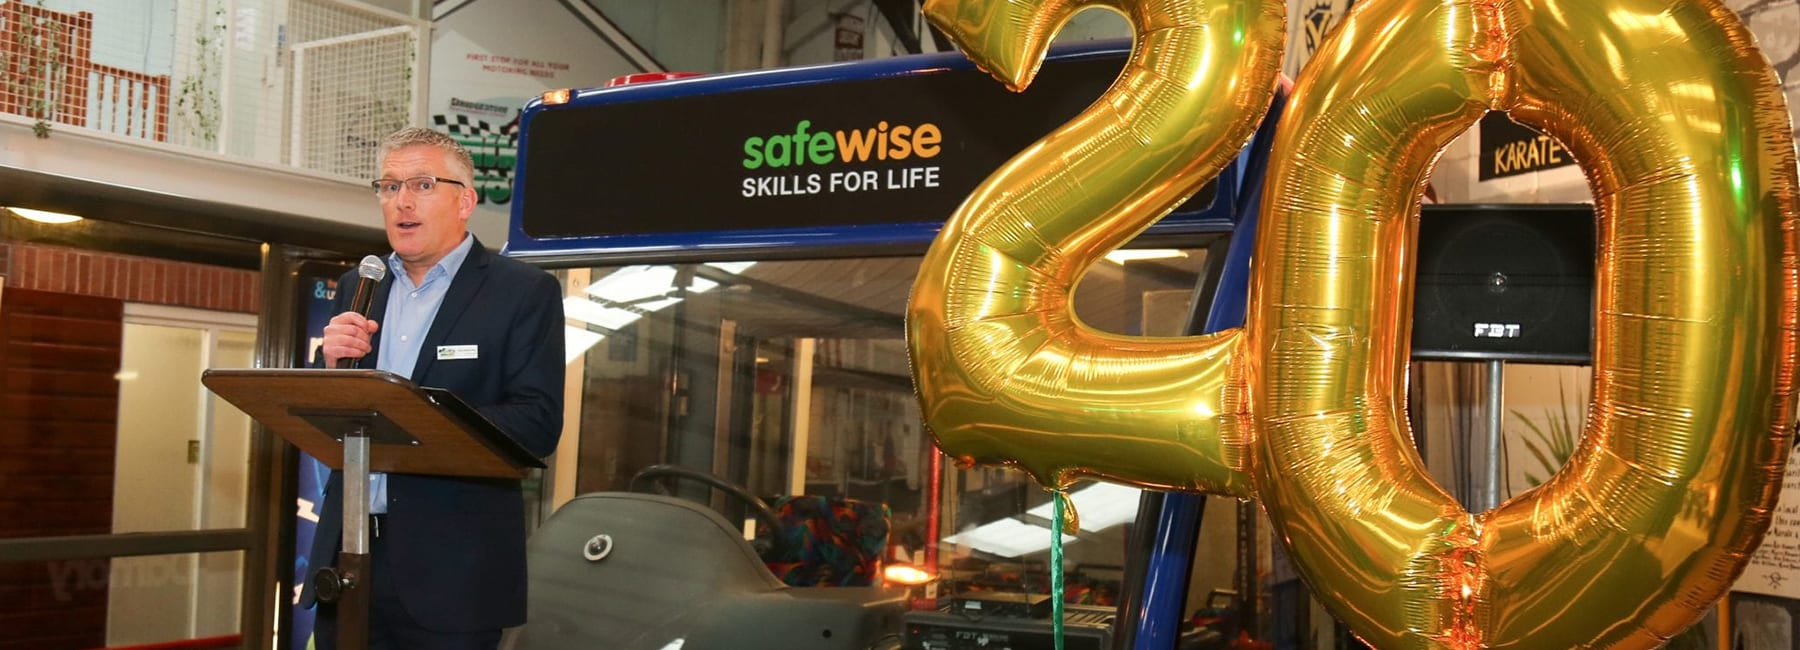 Digital Storm attends Safewise 20th Anniversary celebrations